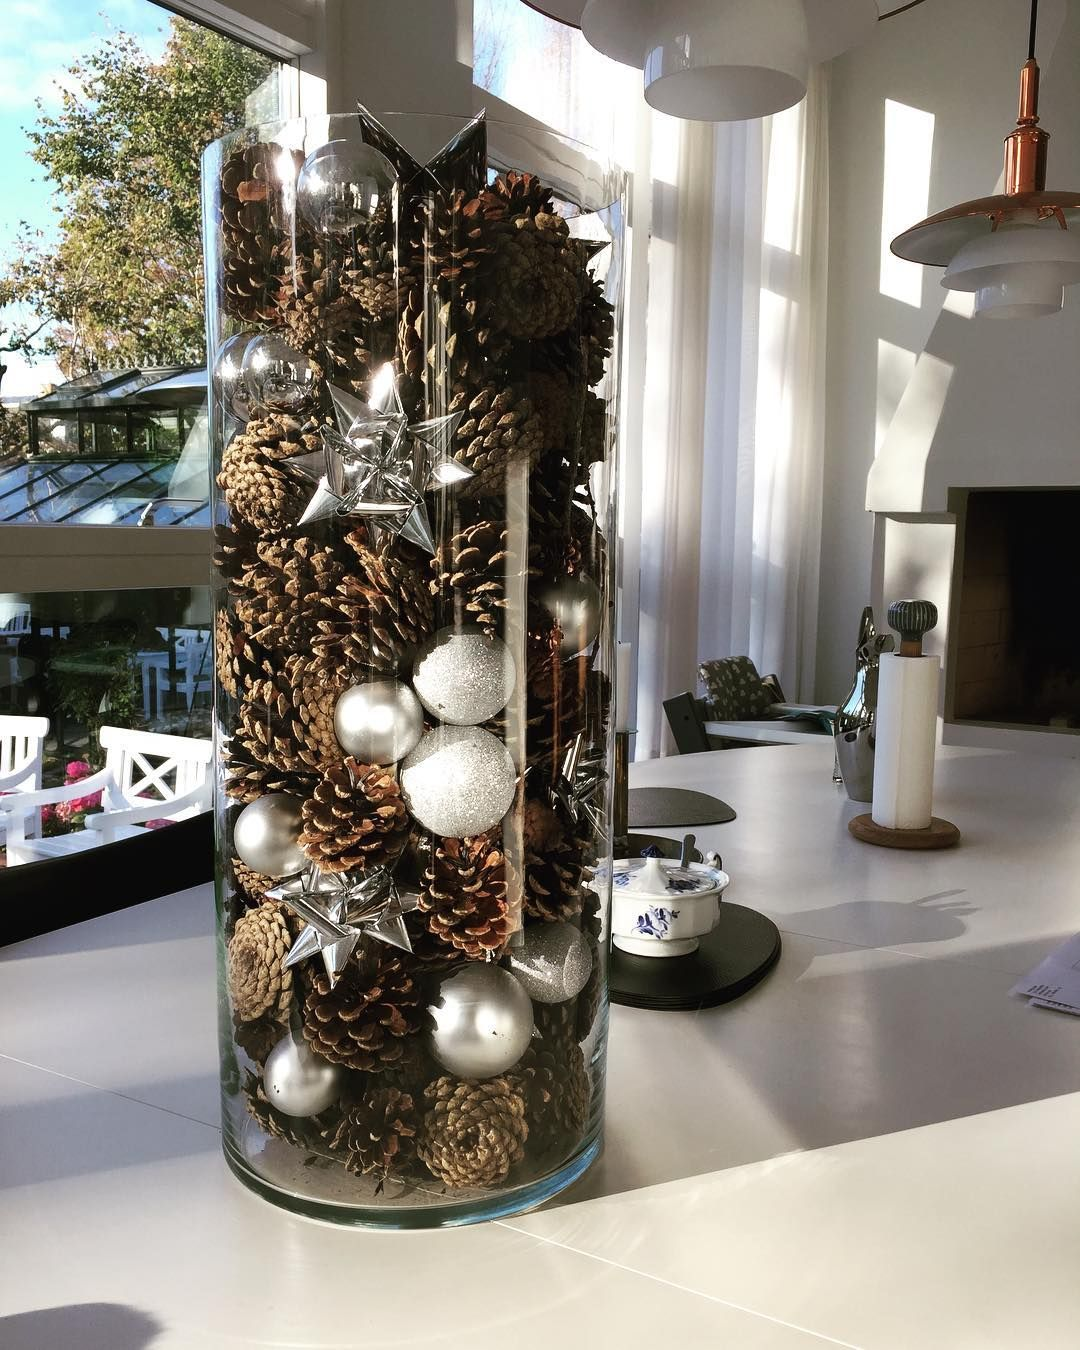 """Dorthe Klitgaard Thomsen on Instagram: """"A simple and easy way to create beautiful Christmas decorations ��������#thechristmashome #Christmas #decoration #koglerogkugler #jul2017…"""""""